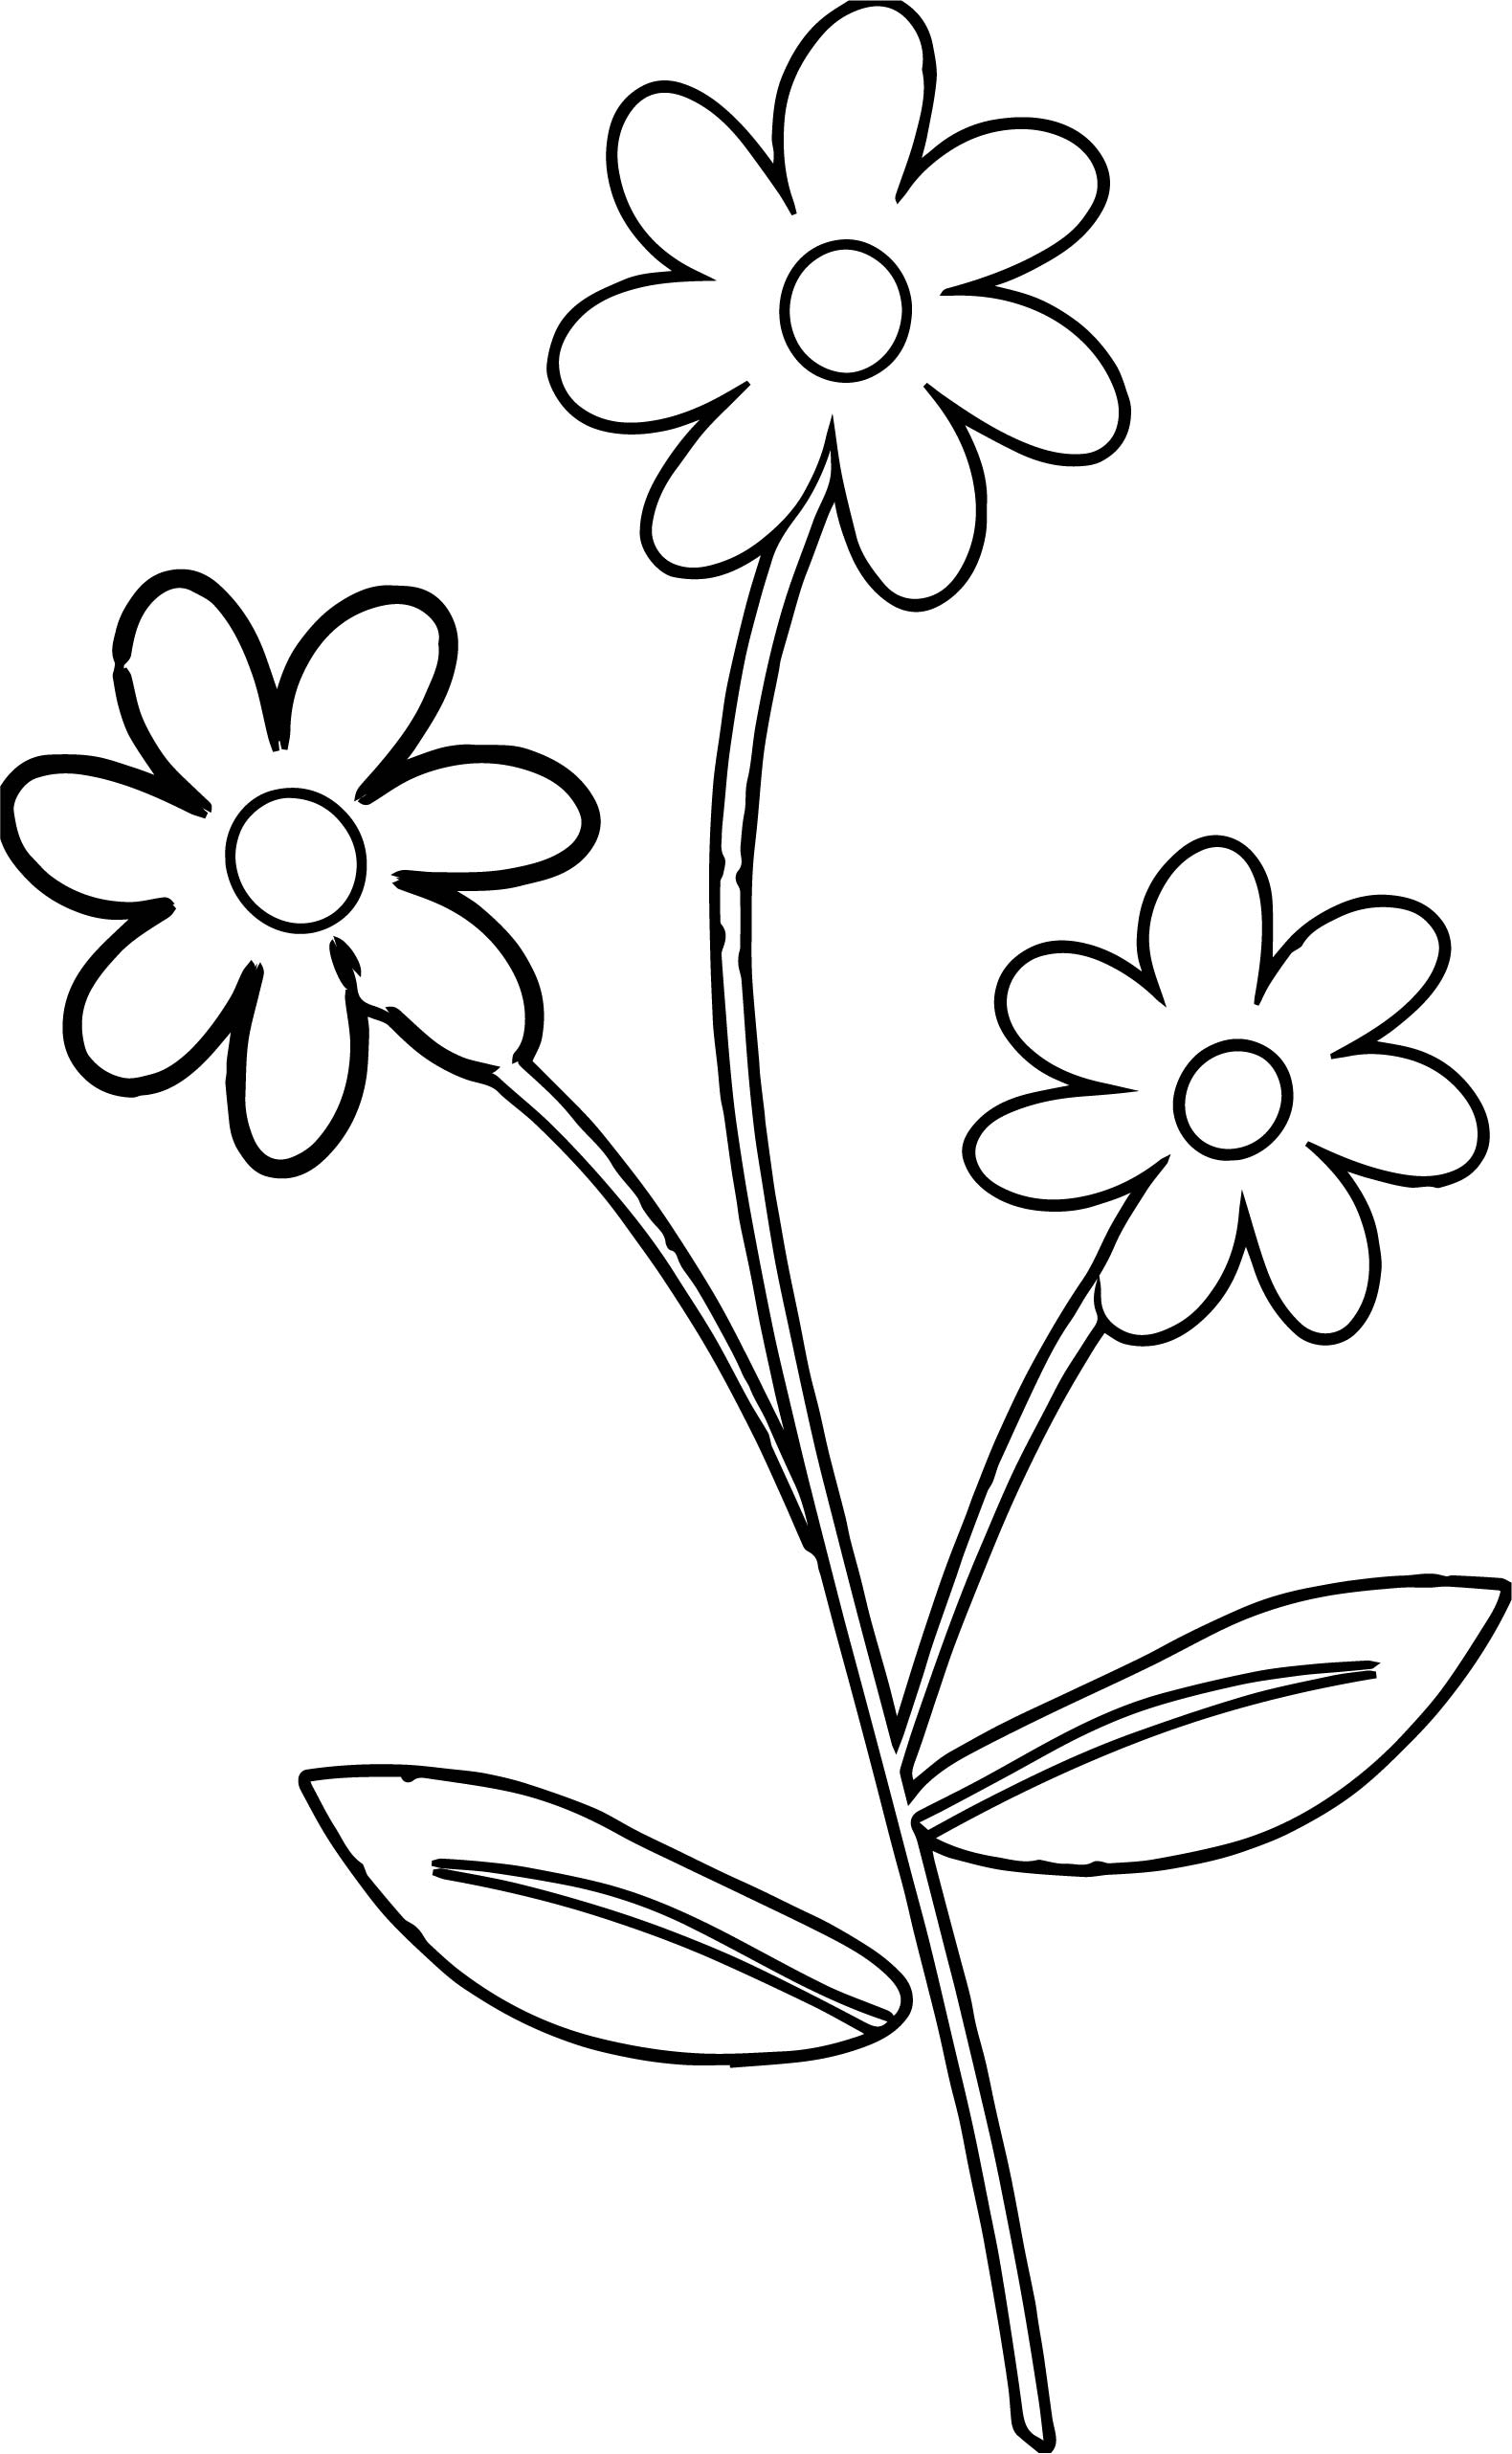 Cute Flower Border Flowers Coloring